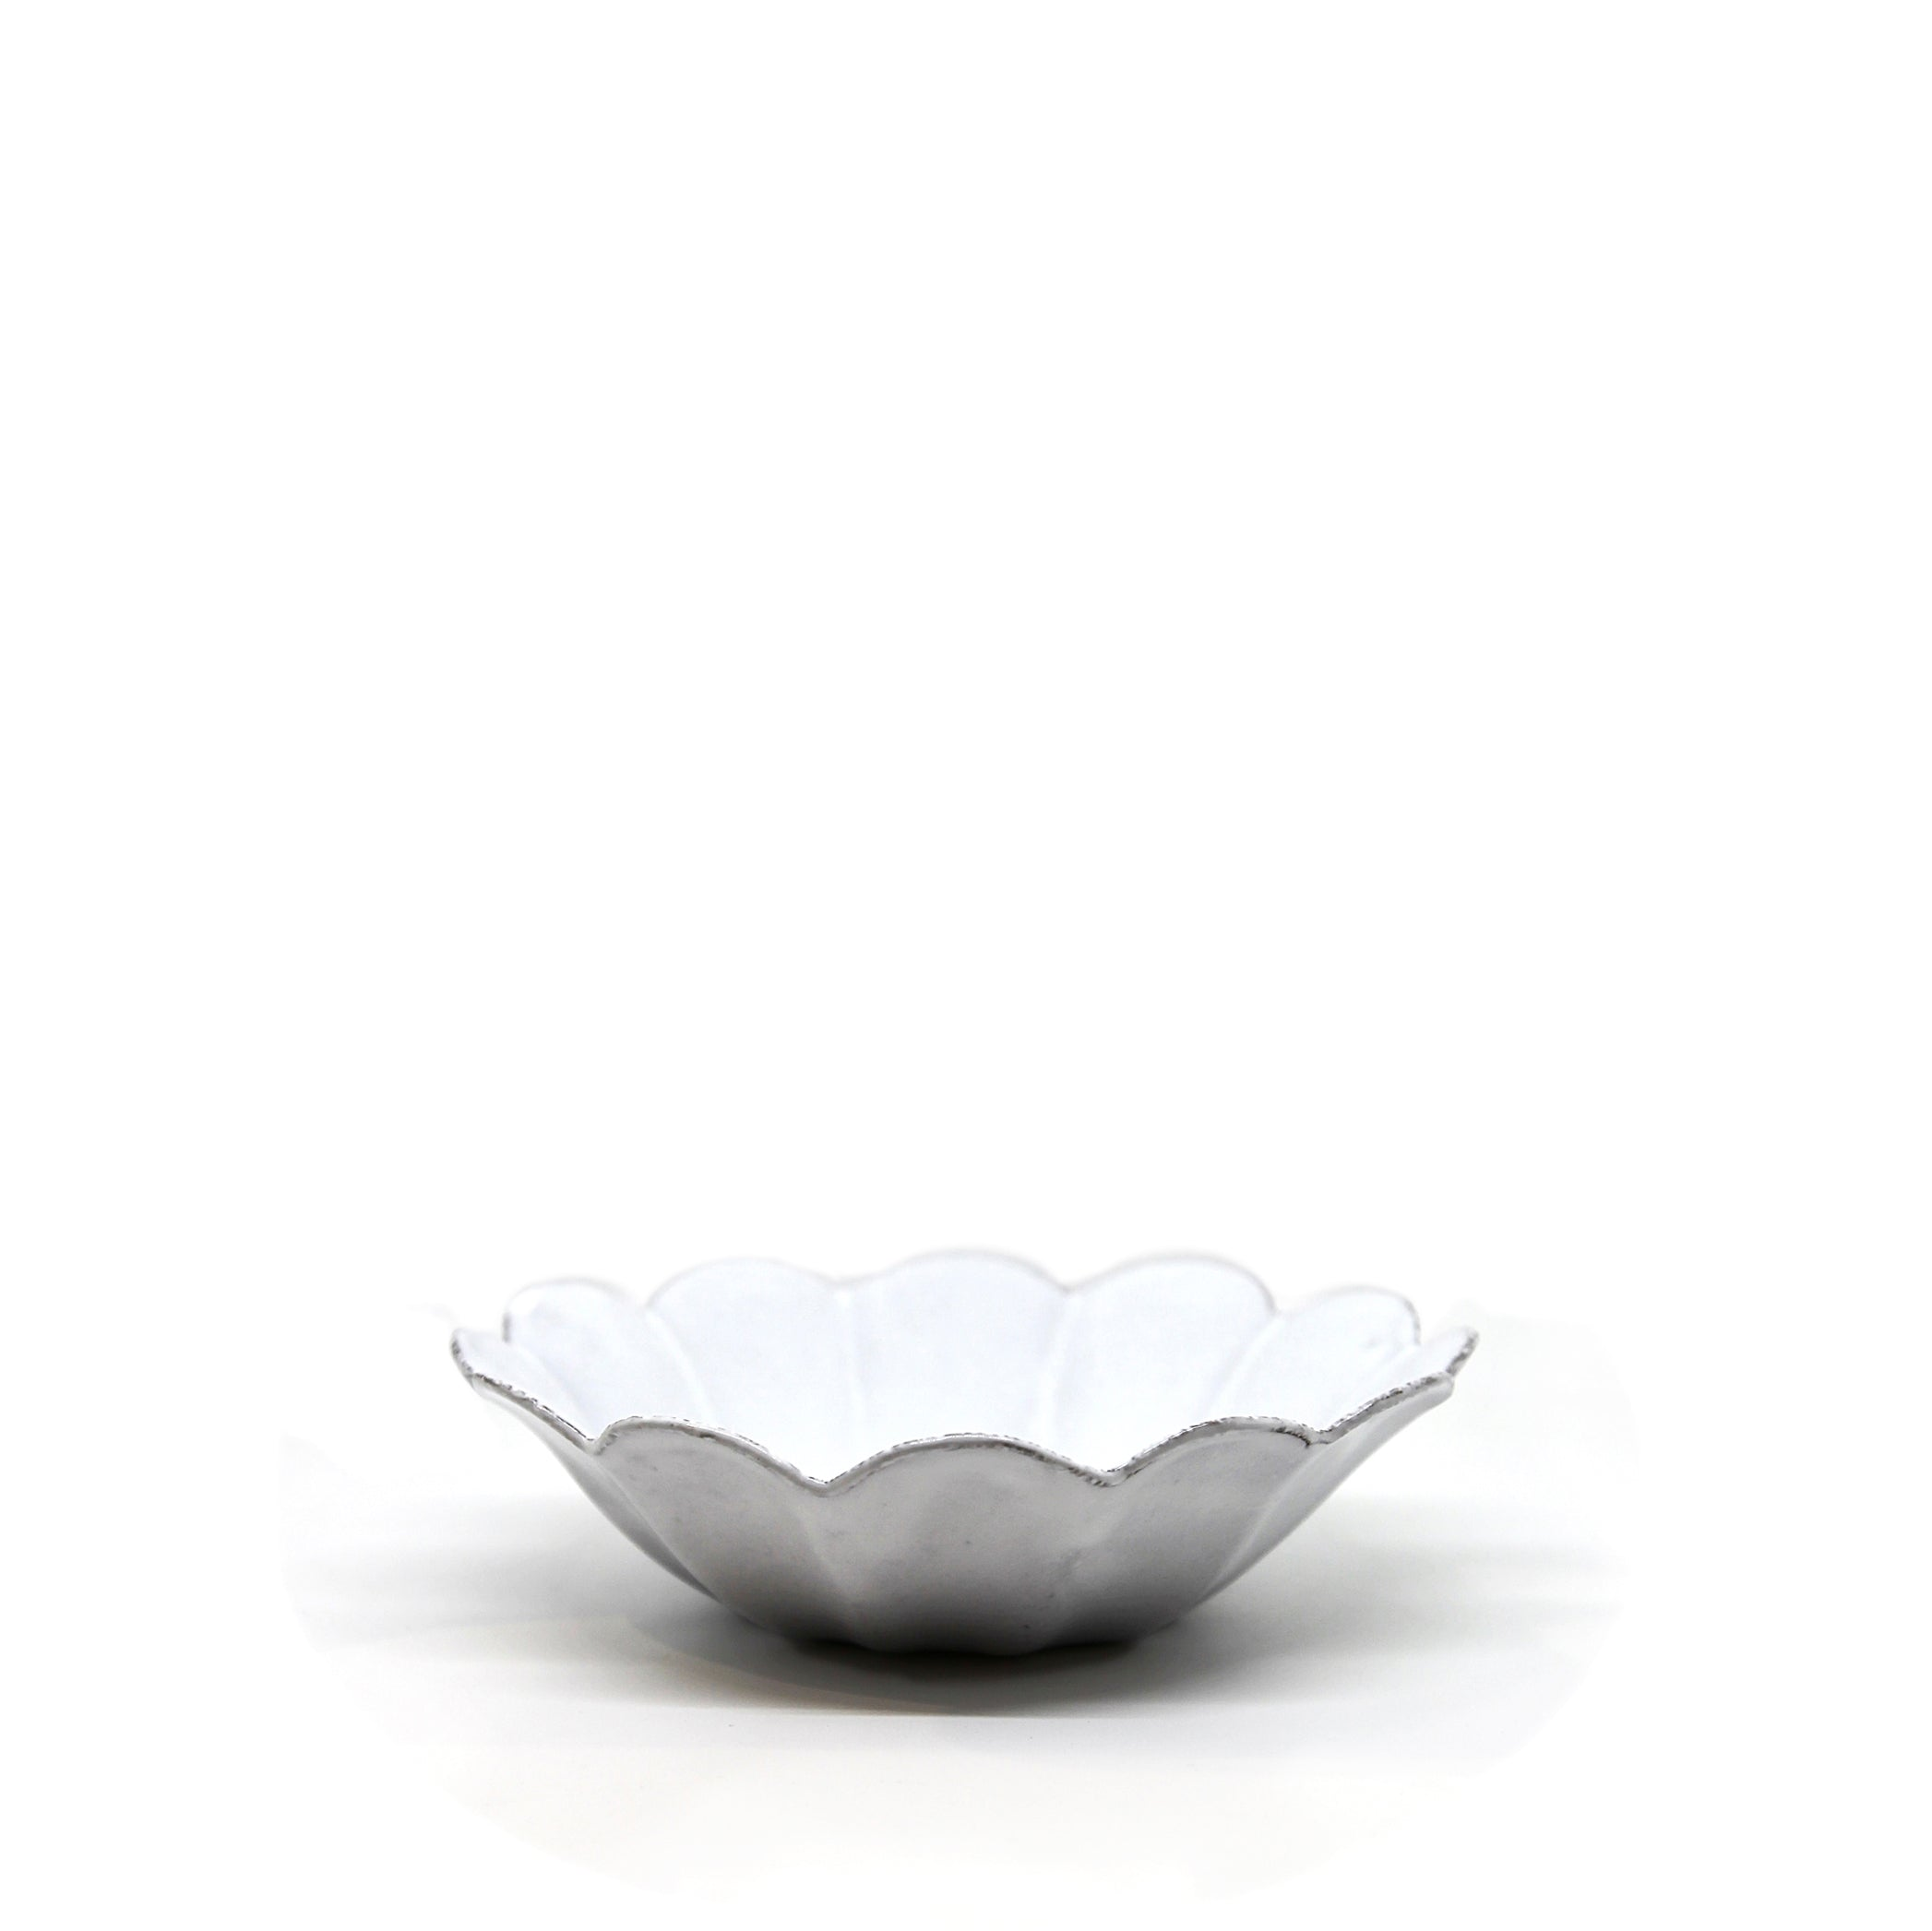 Marguerite Small Fruit Bowl by Astier de Villatte